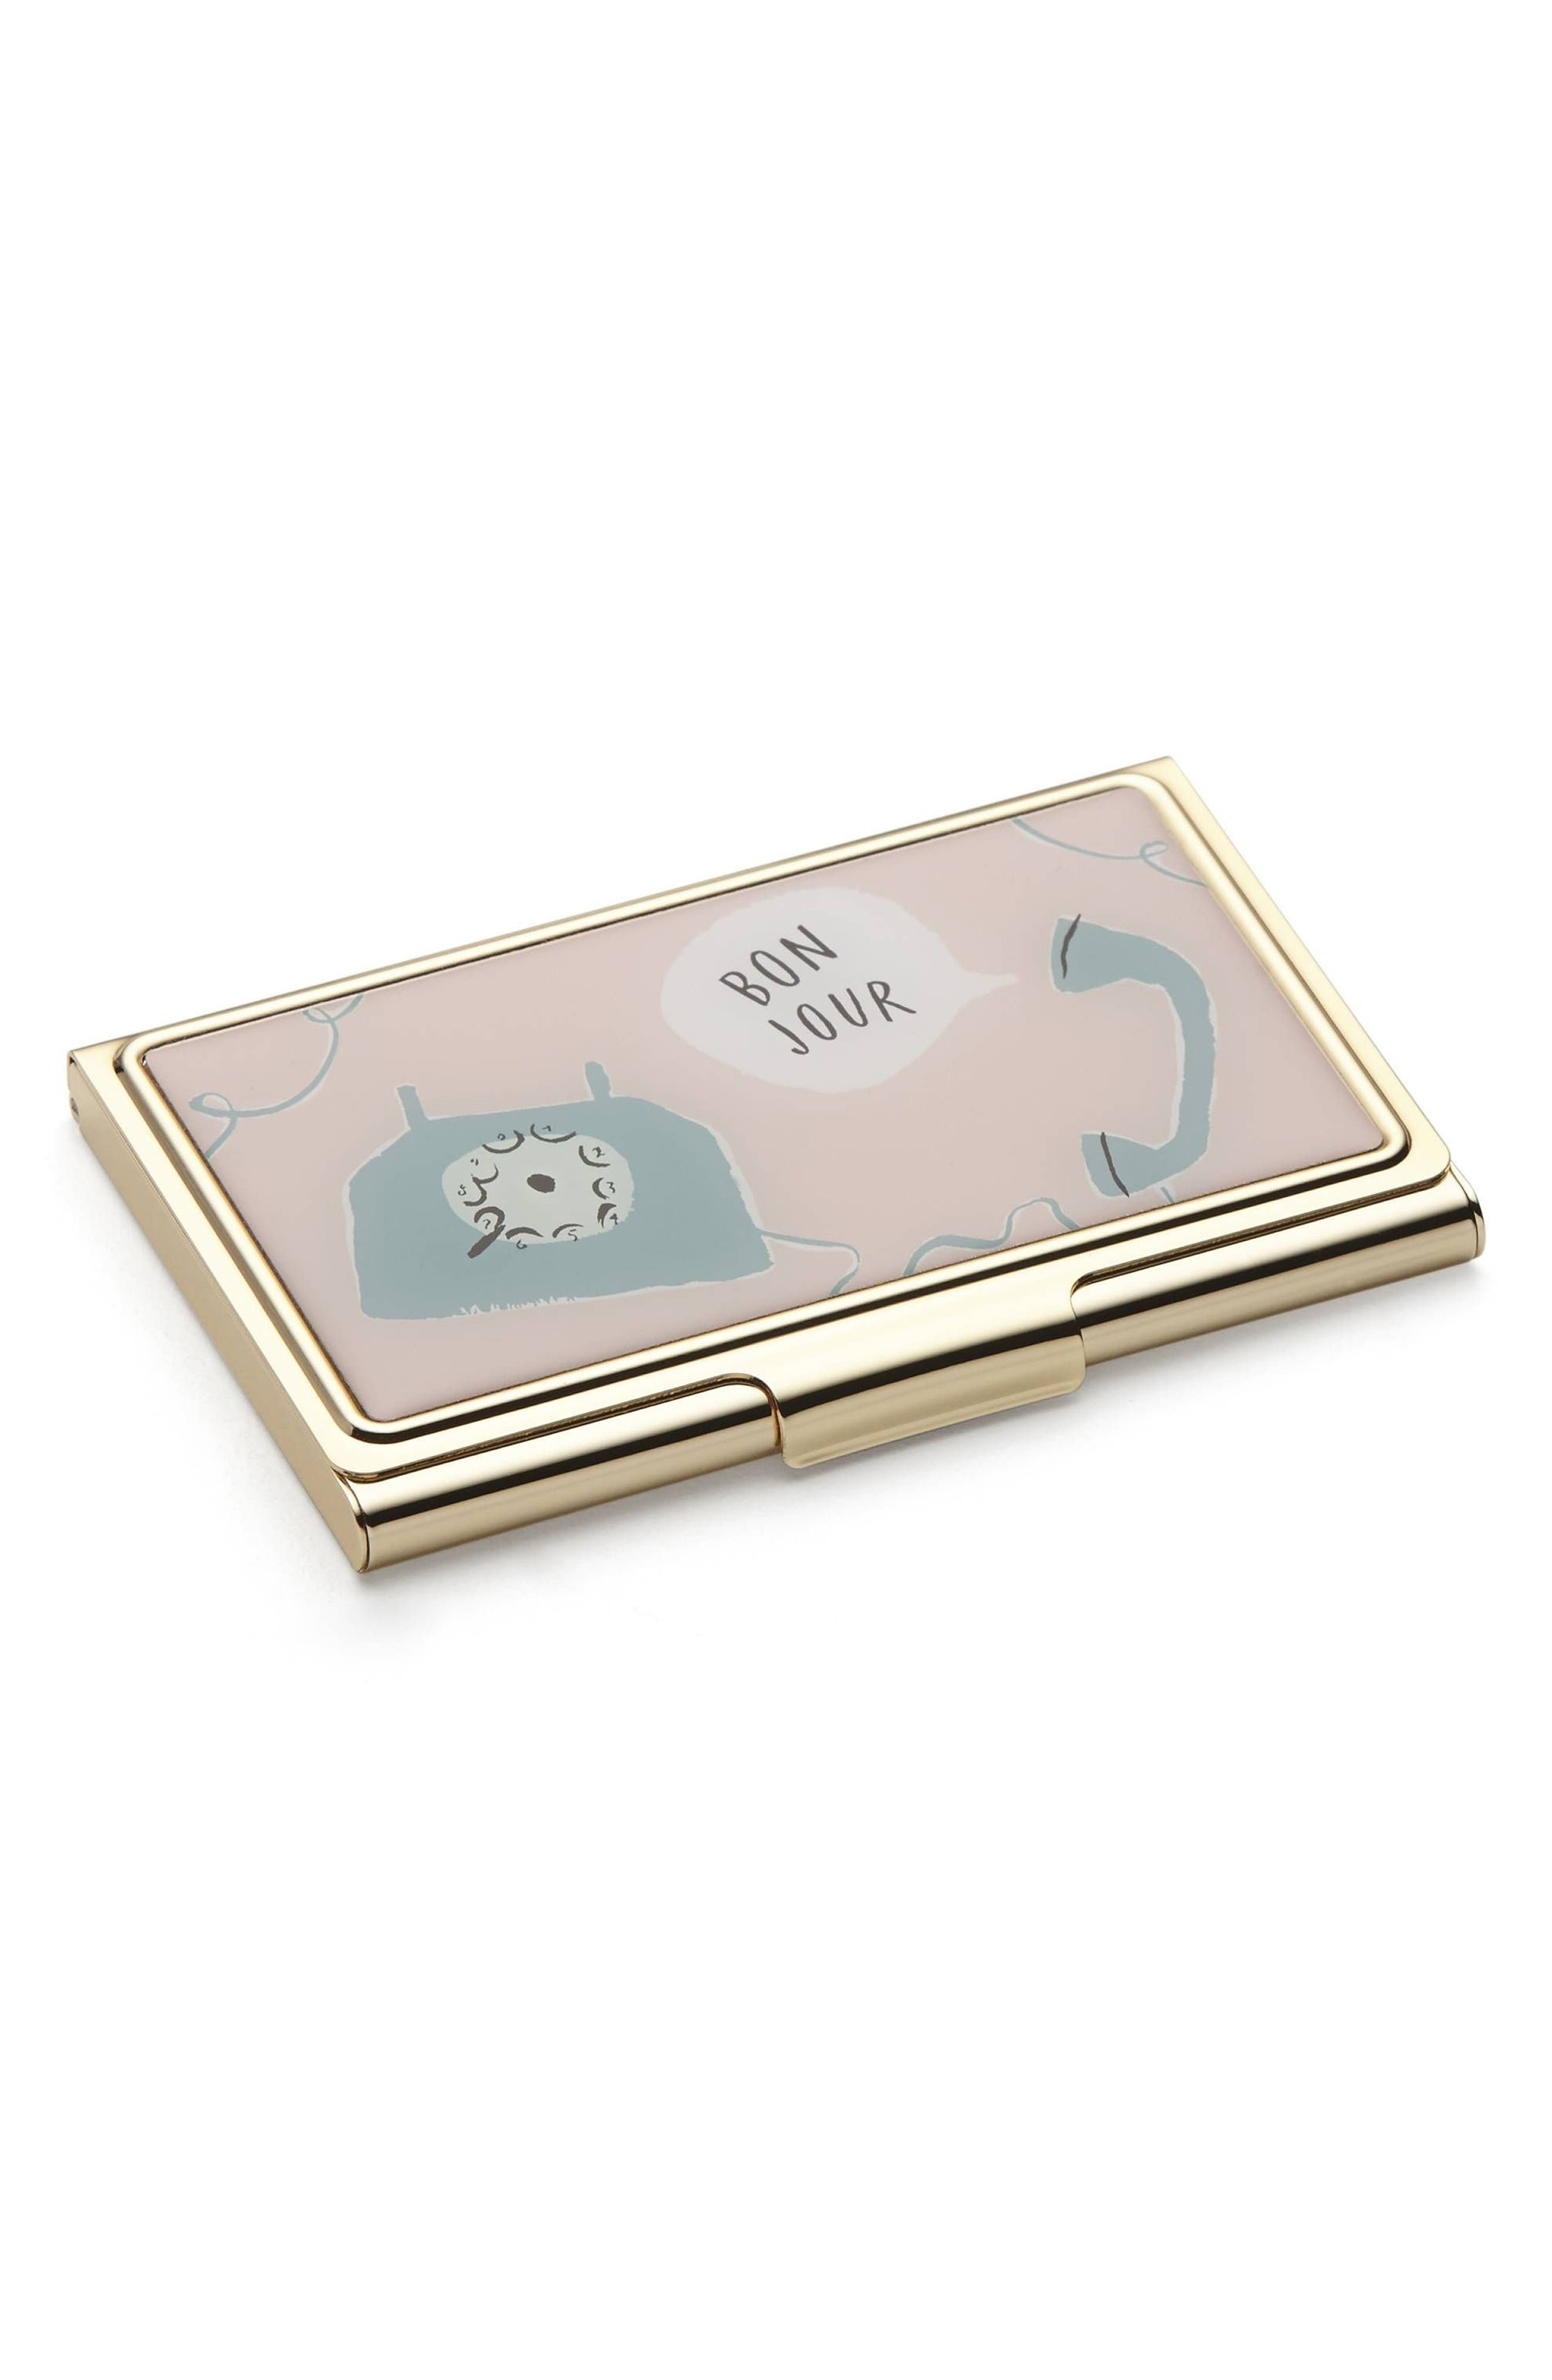 Main Image - kate spade new york boudoir chic card case